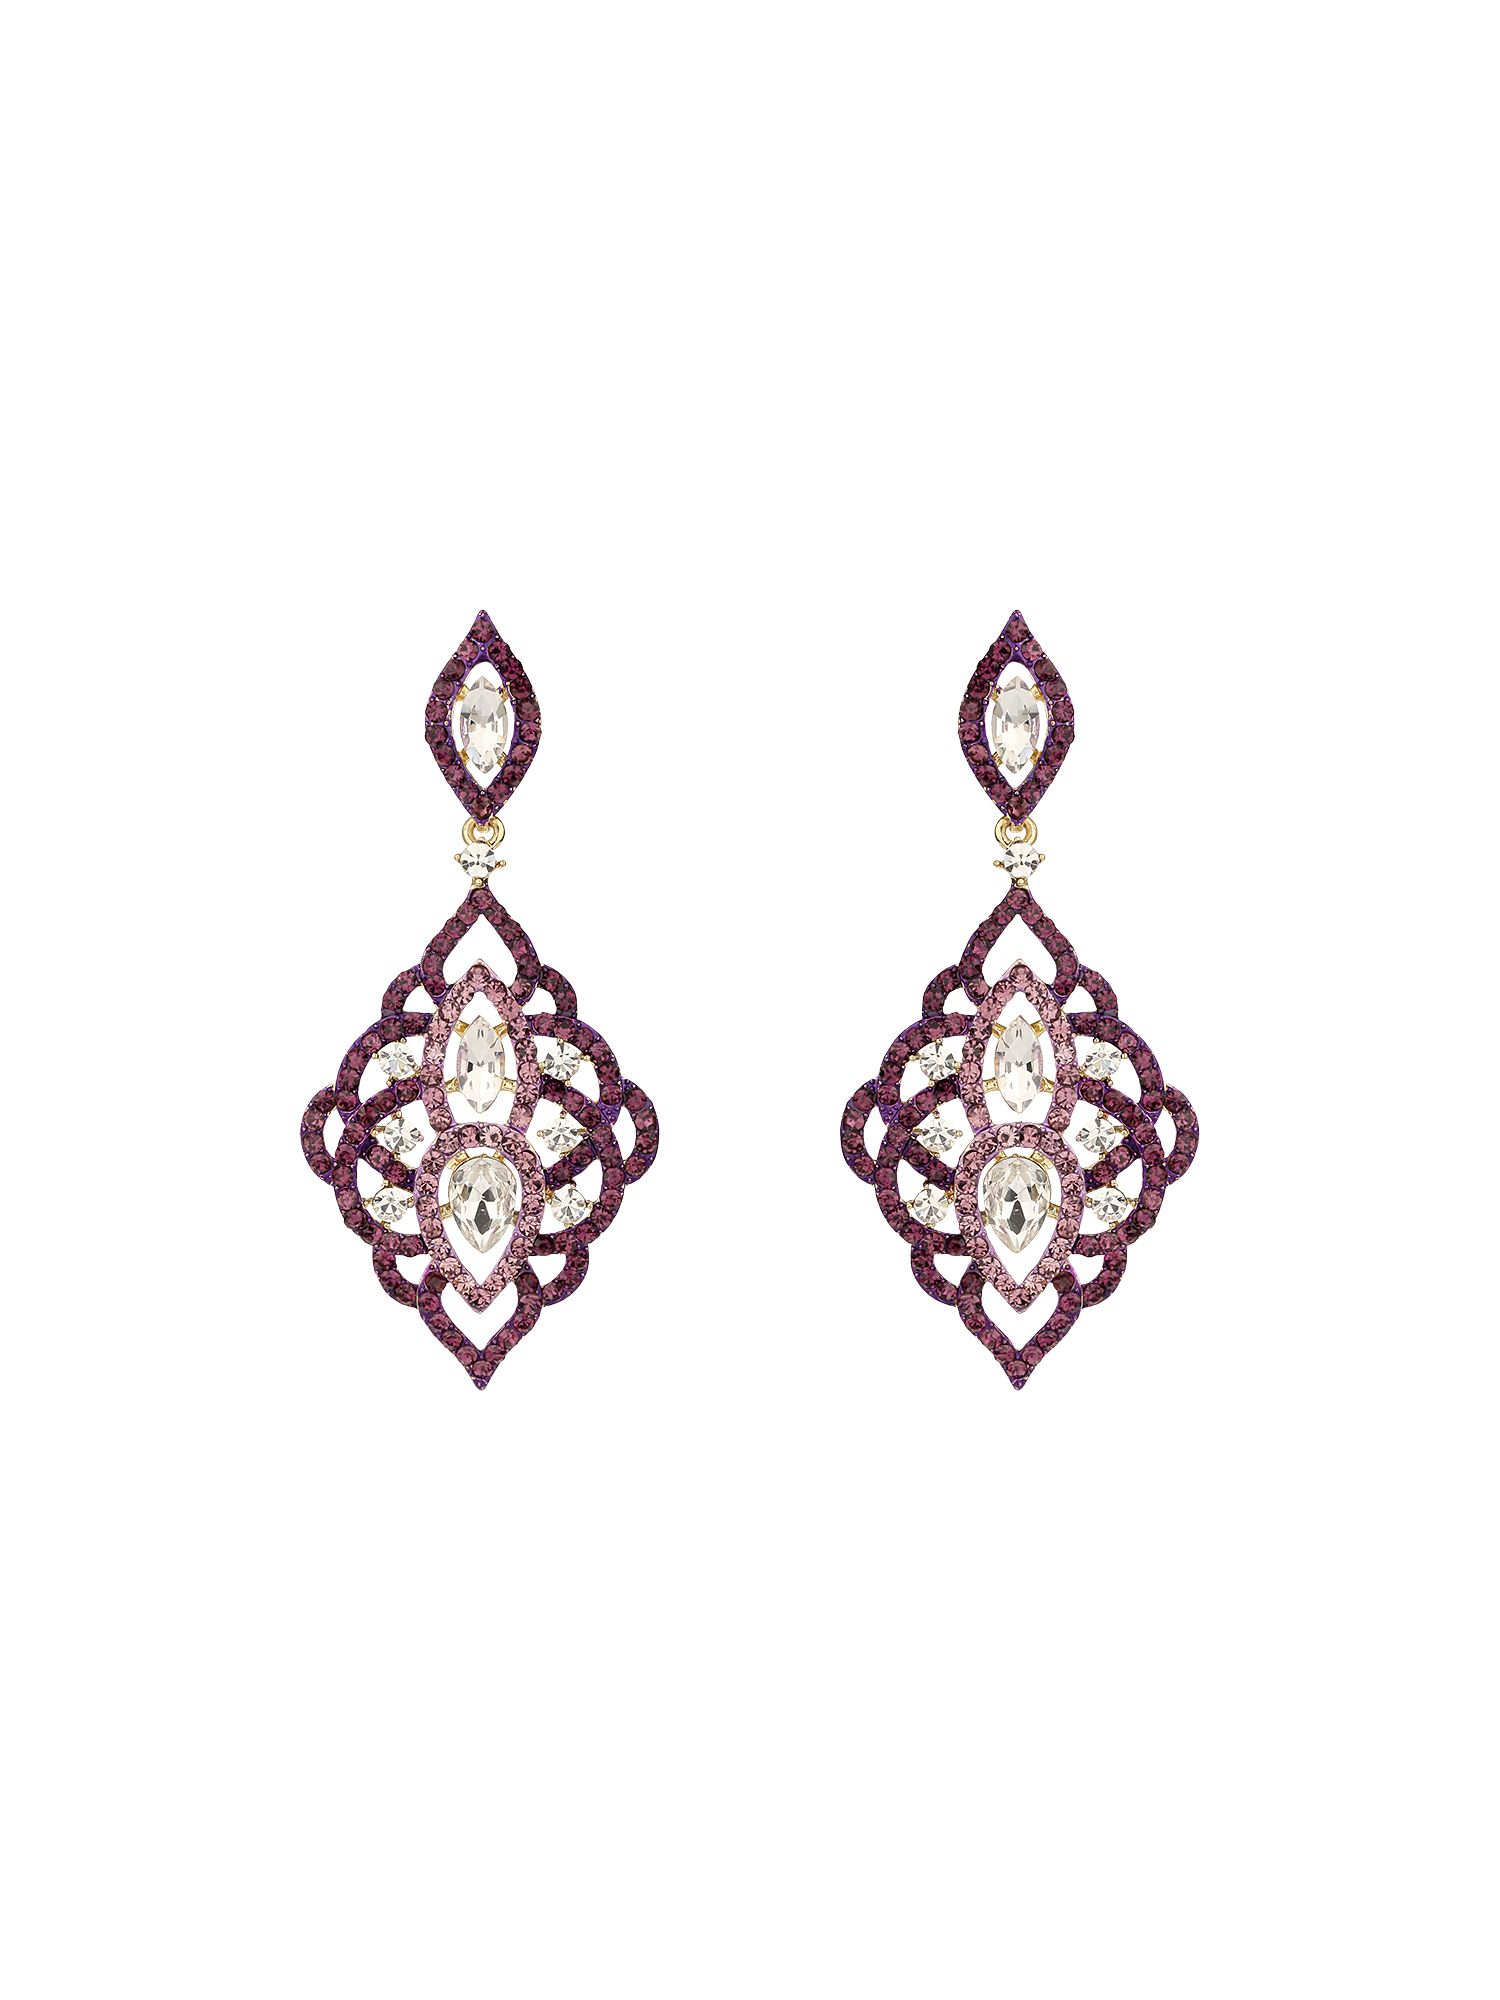 Fillagary spread earring